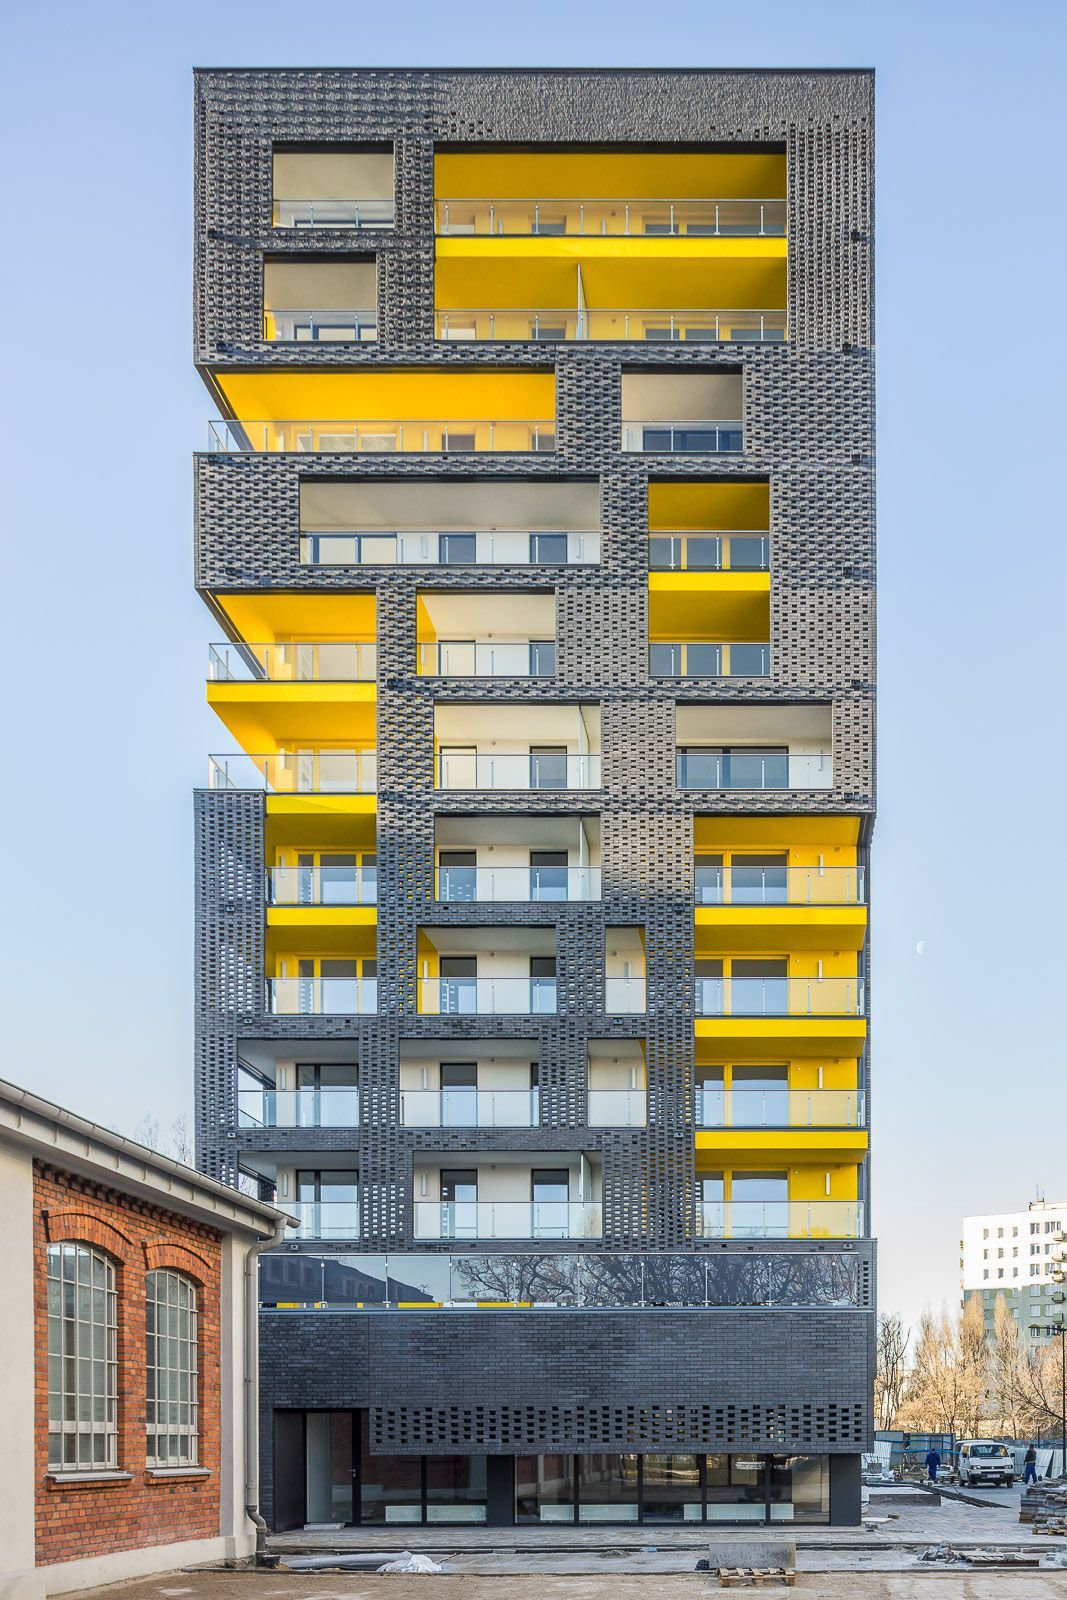 A f a s i a wwaa architecture pinterest for Cool modern buildings